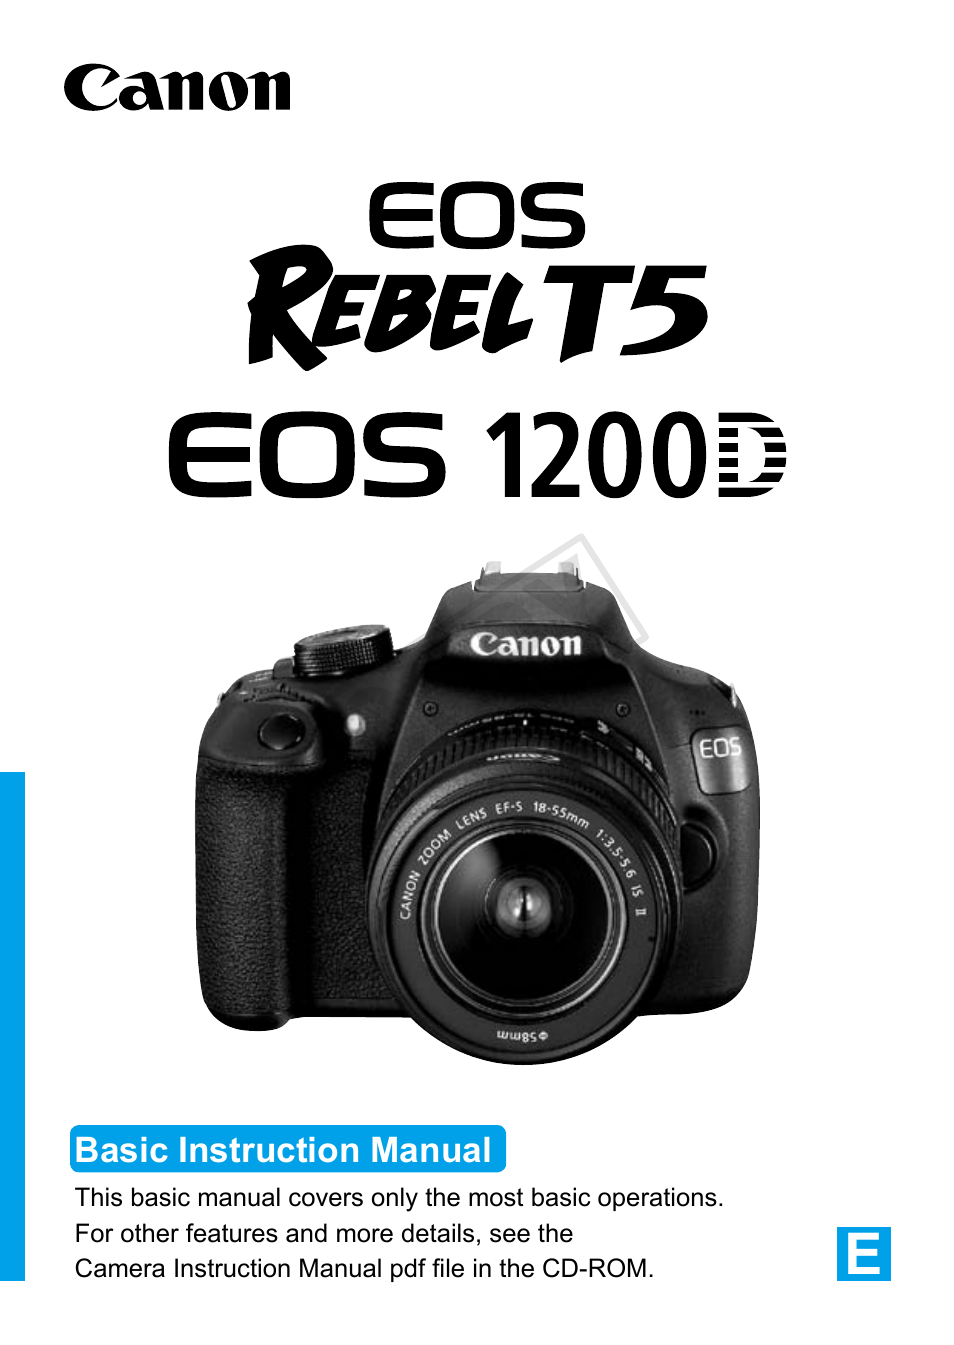 canon 1000d manual various owner manual guide u2022 rh justk co canon eos 1000d user manual Canon EOS 500D